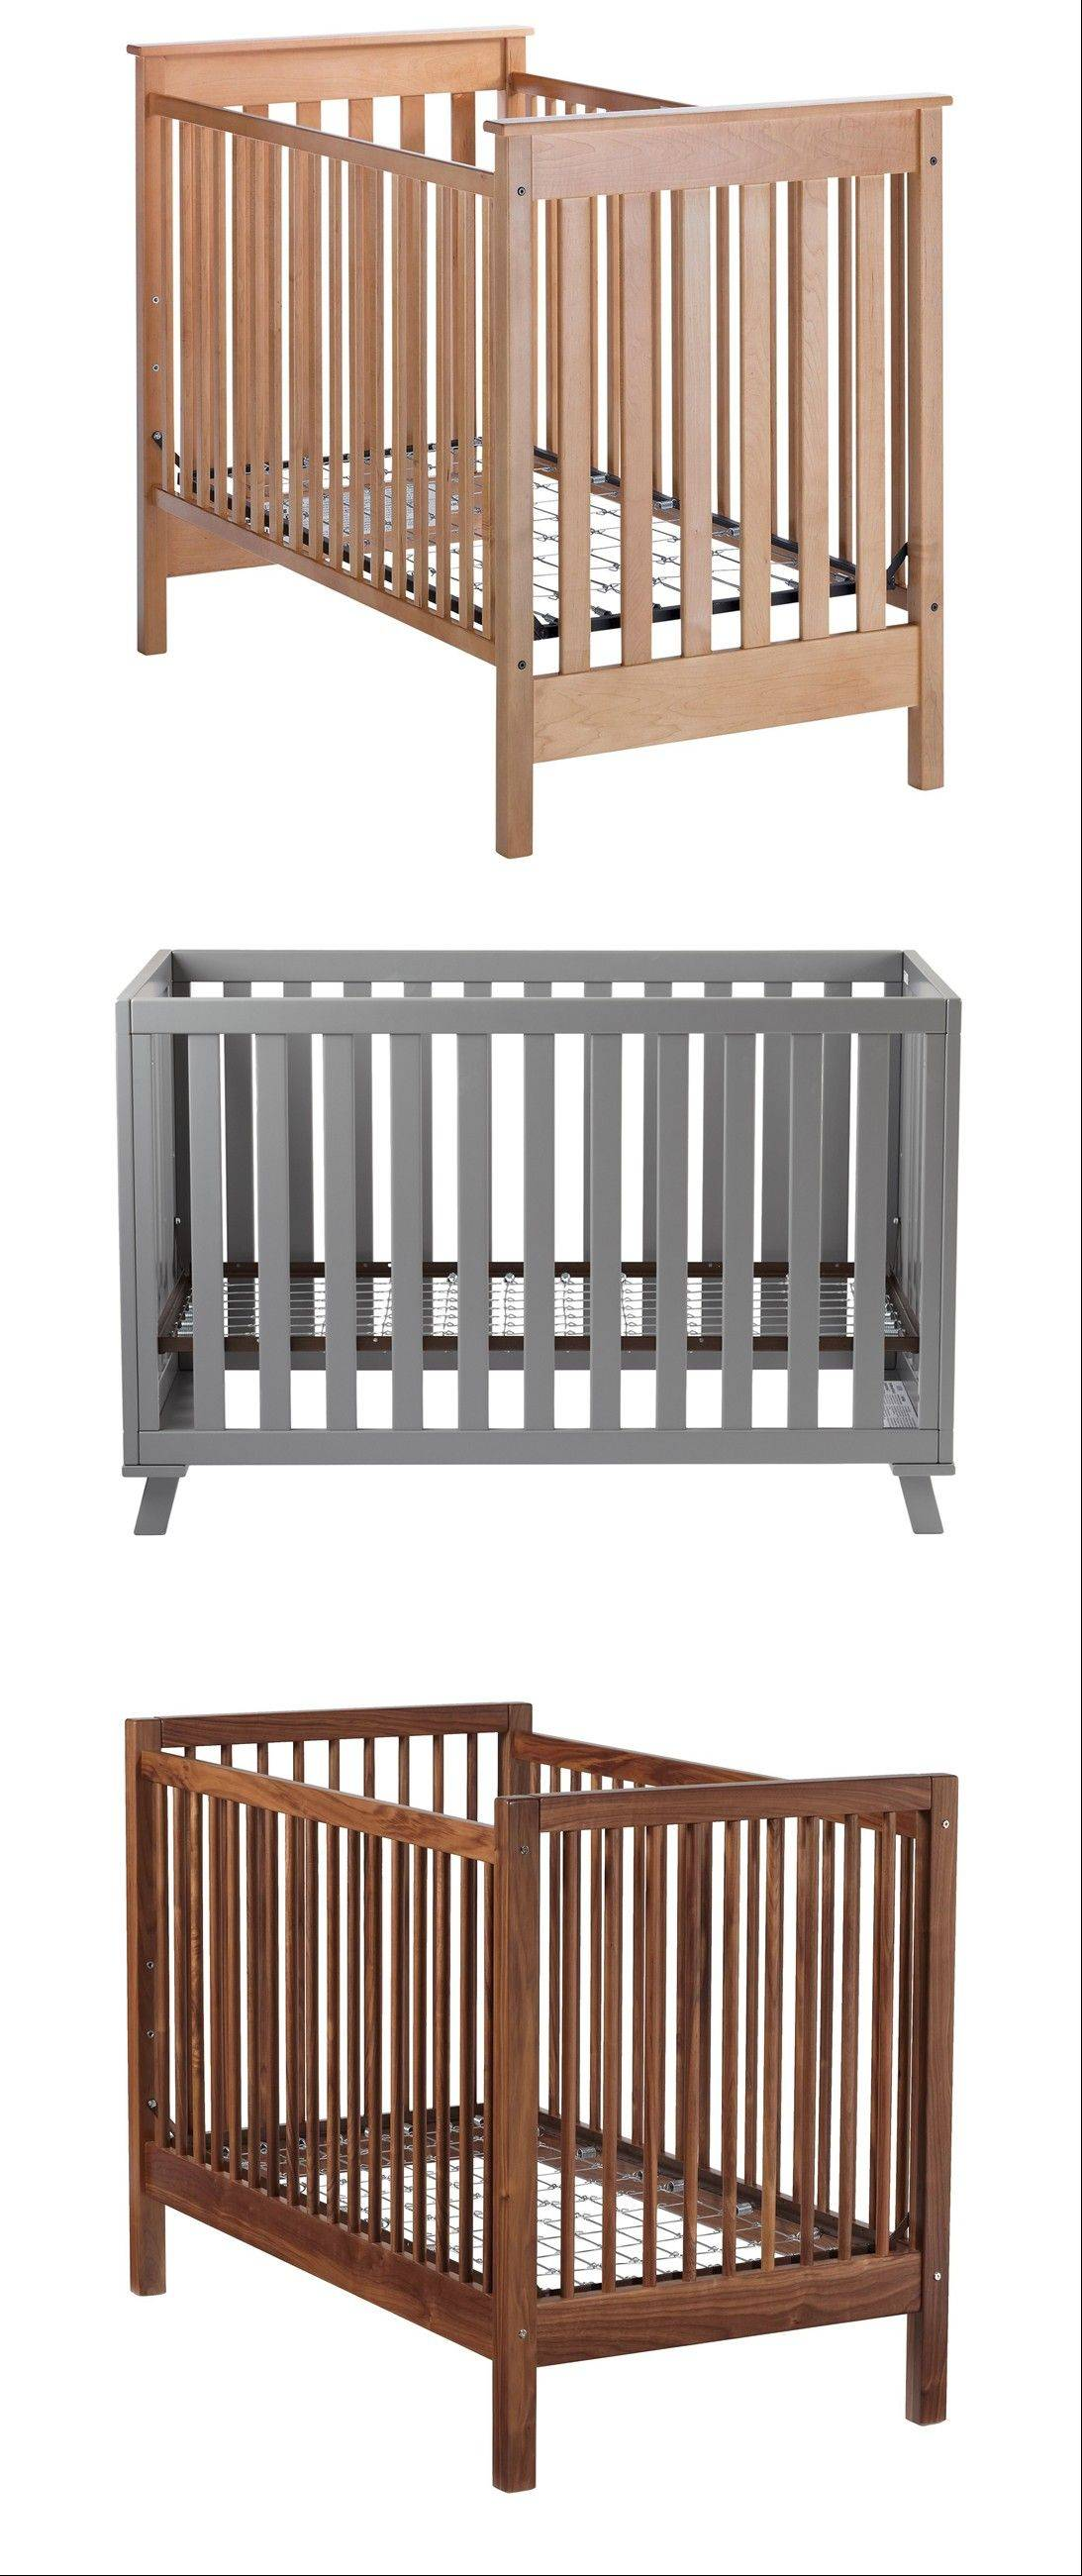 Safety first when choosing a crib. Advice. From top, Straight-Up Crib, Low-Rise Crib and Andersen Walnut Crib, bottom.